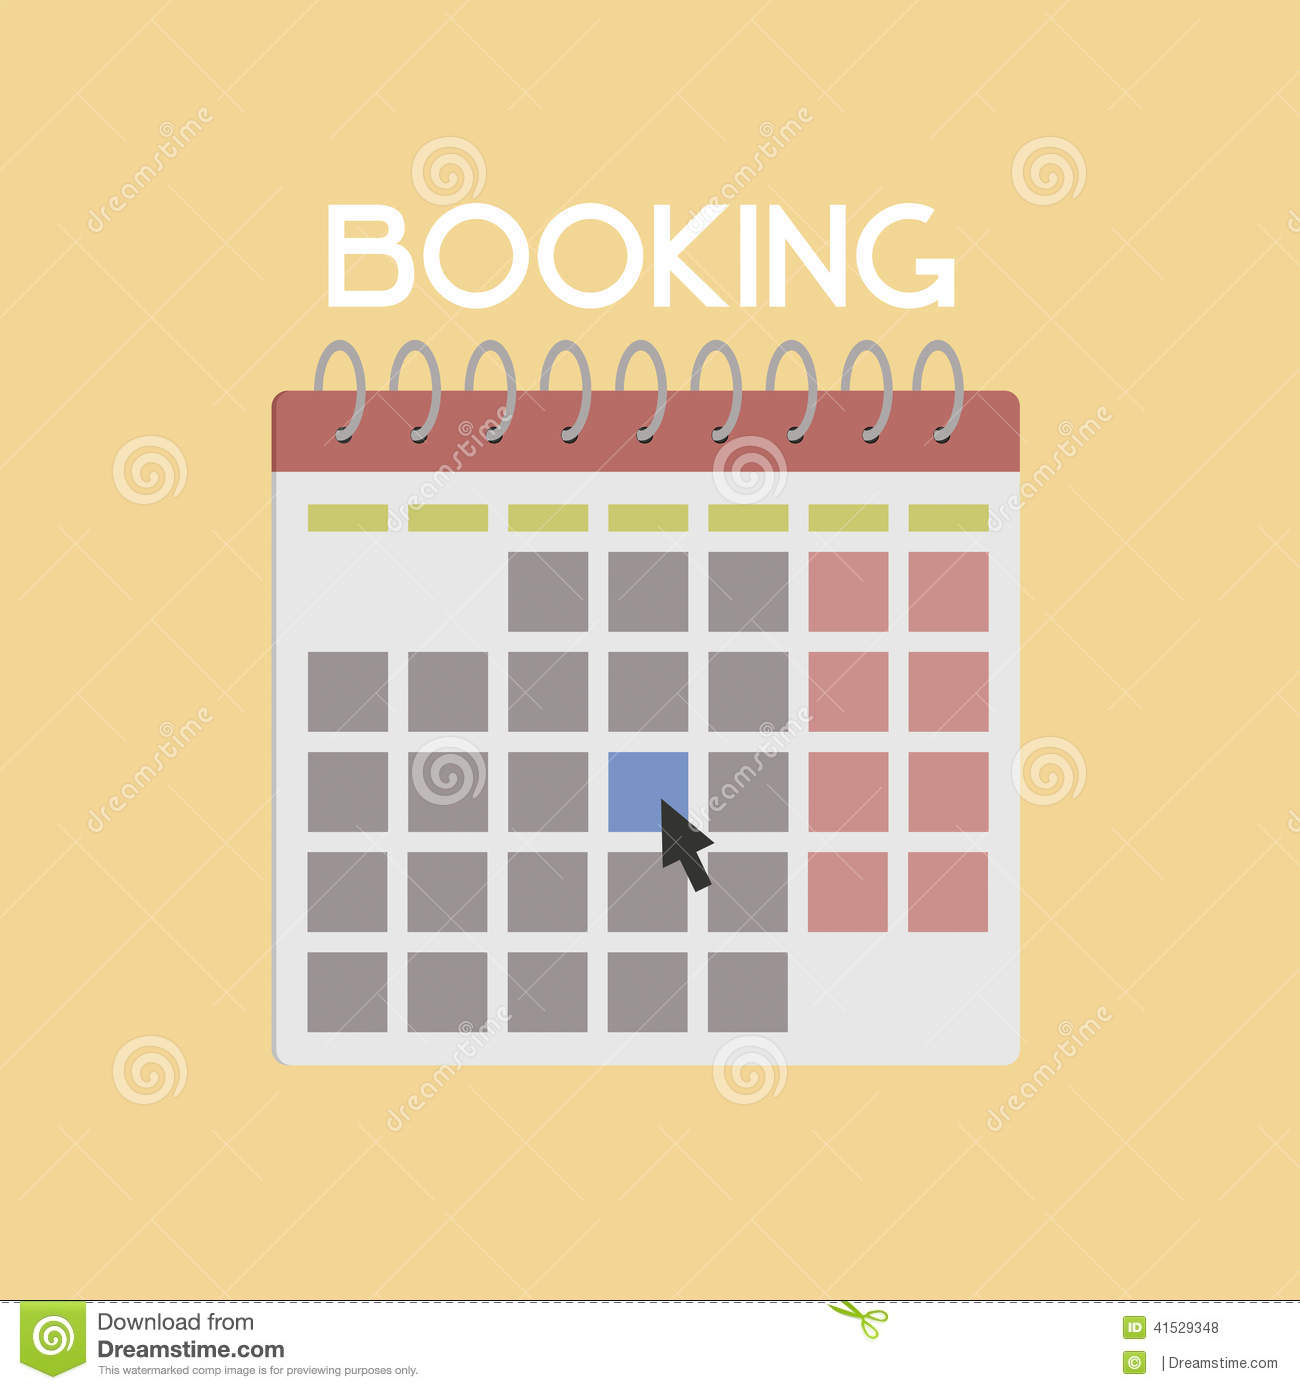 background study for online hotel reservation system Online reservation system engine for online travel agent (ota) offer with unlimited property hotels, rooms, etc learn more about hotel reservation system you have selected the maximum of 4 products to compare add to compare.